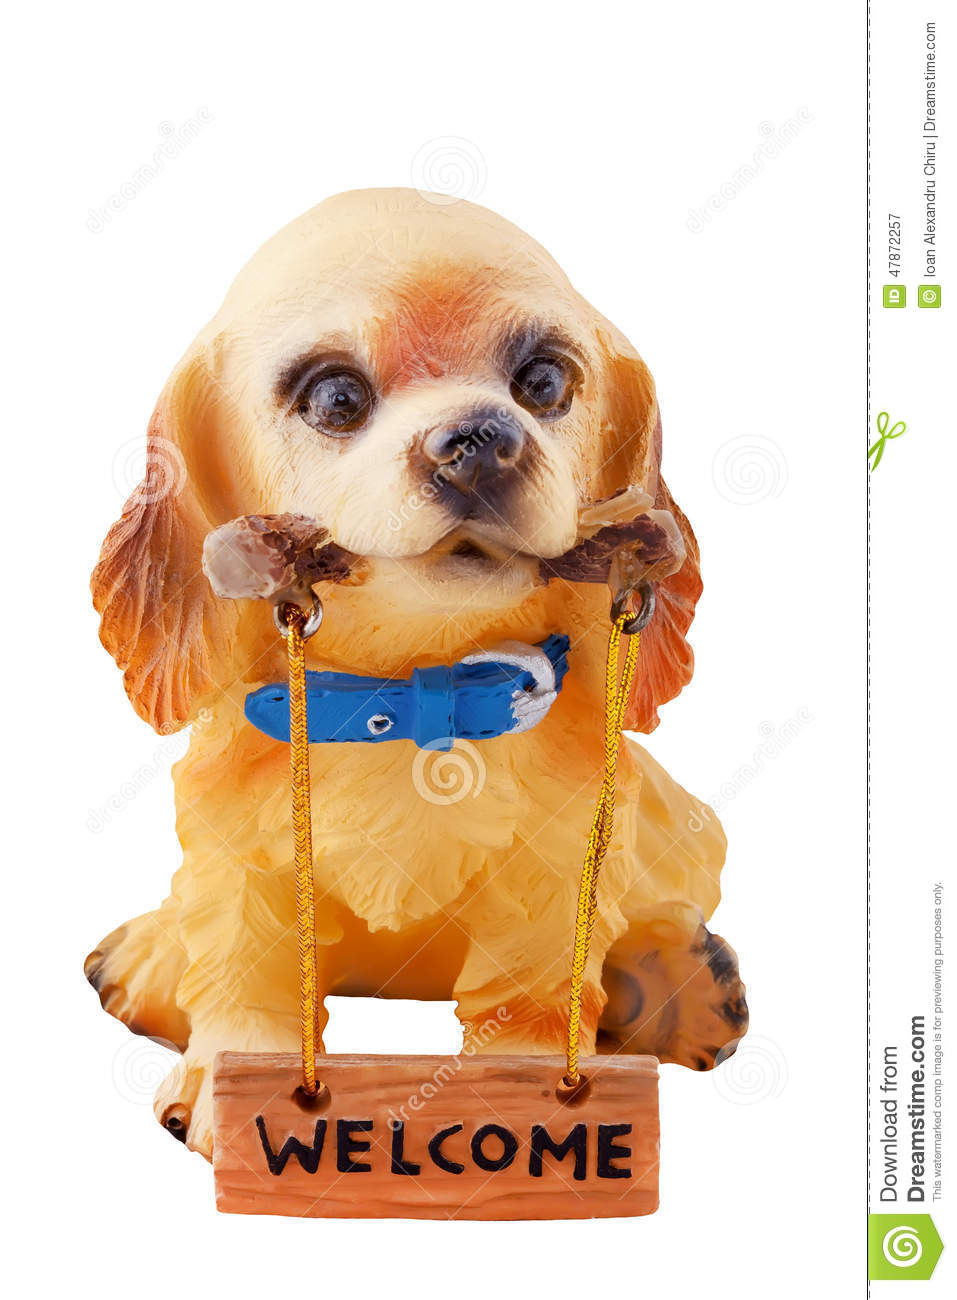 https://thumbs.dreamstime.com/z/cute-puppy-who-will-tell-you-welcome-dog-made-ceramic-tells-47872257.jpg